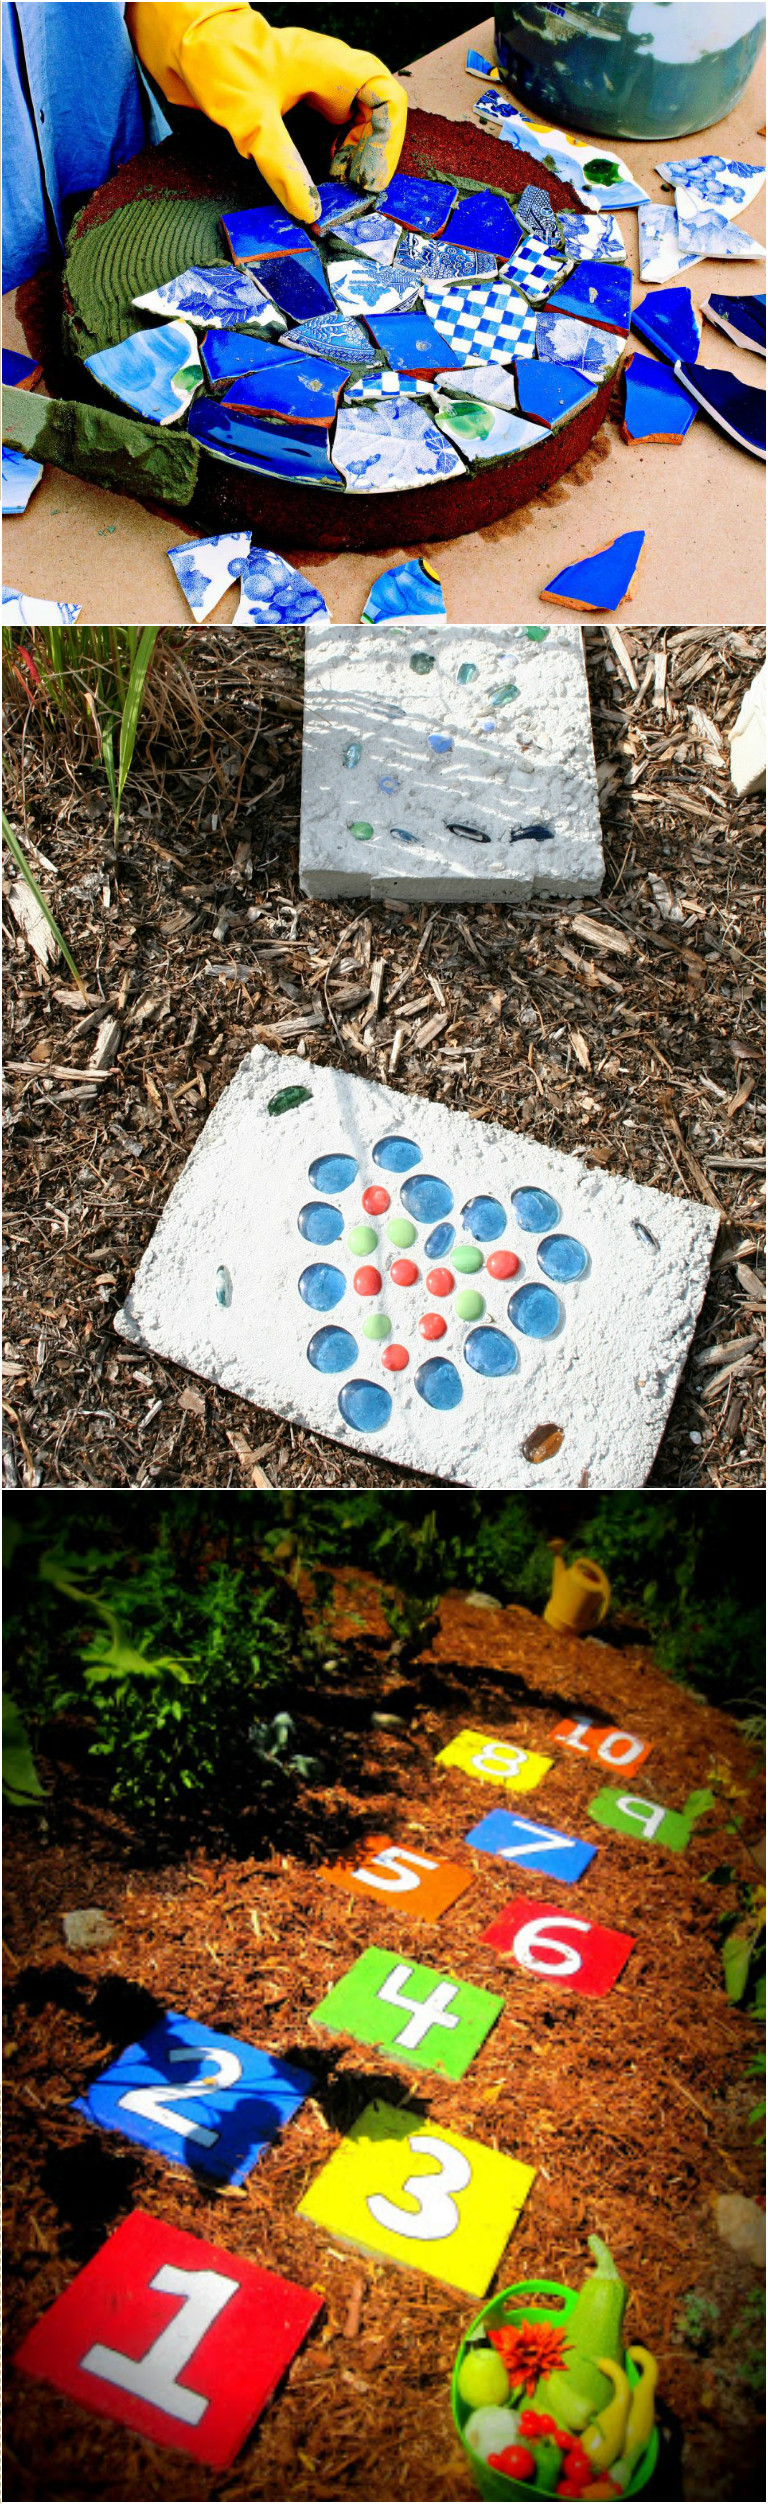 15 garden stepping stones that are easy to diy at home